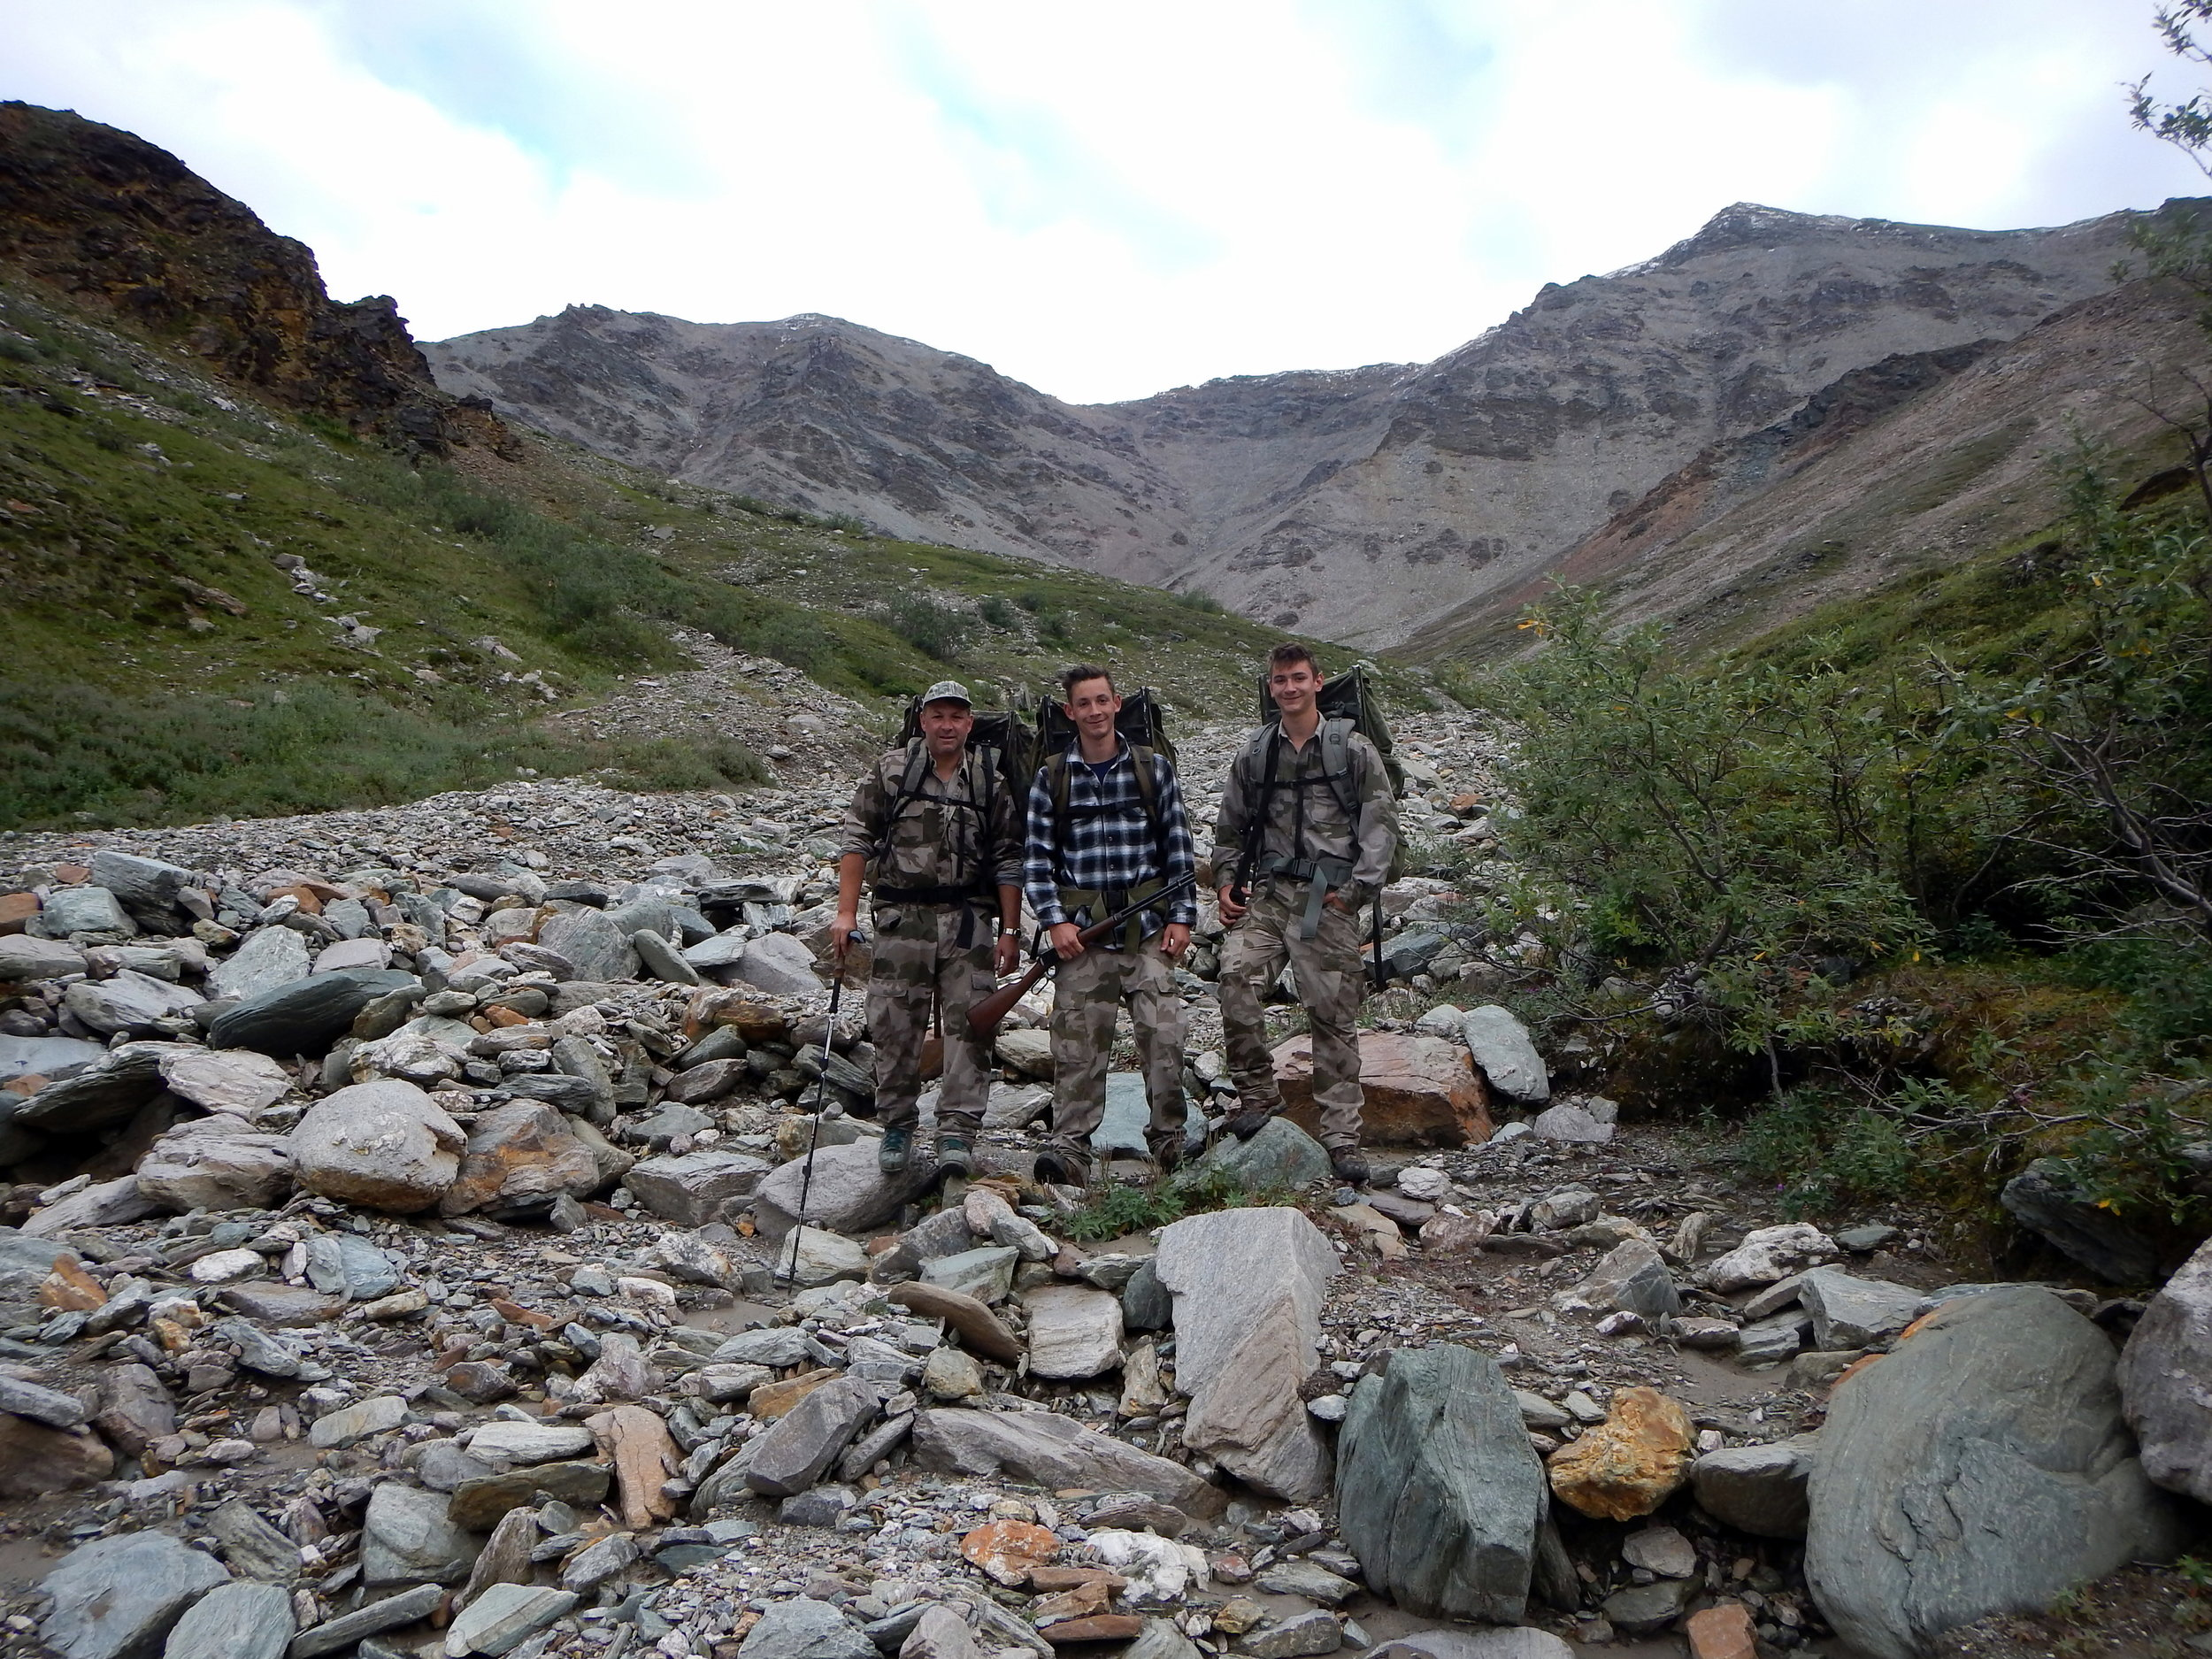 (L to R) Sagen, Jared and Nathan on our way back to camp.